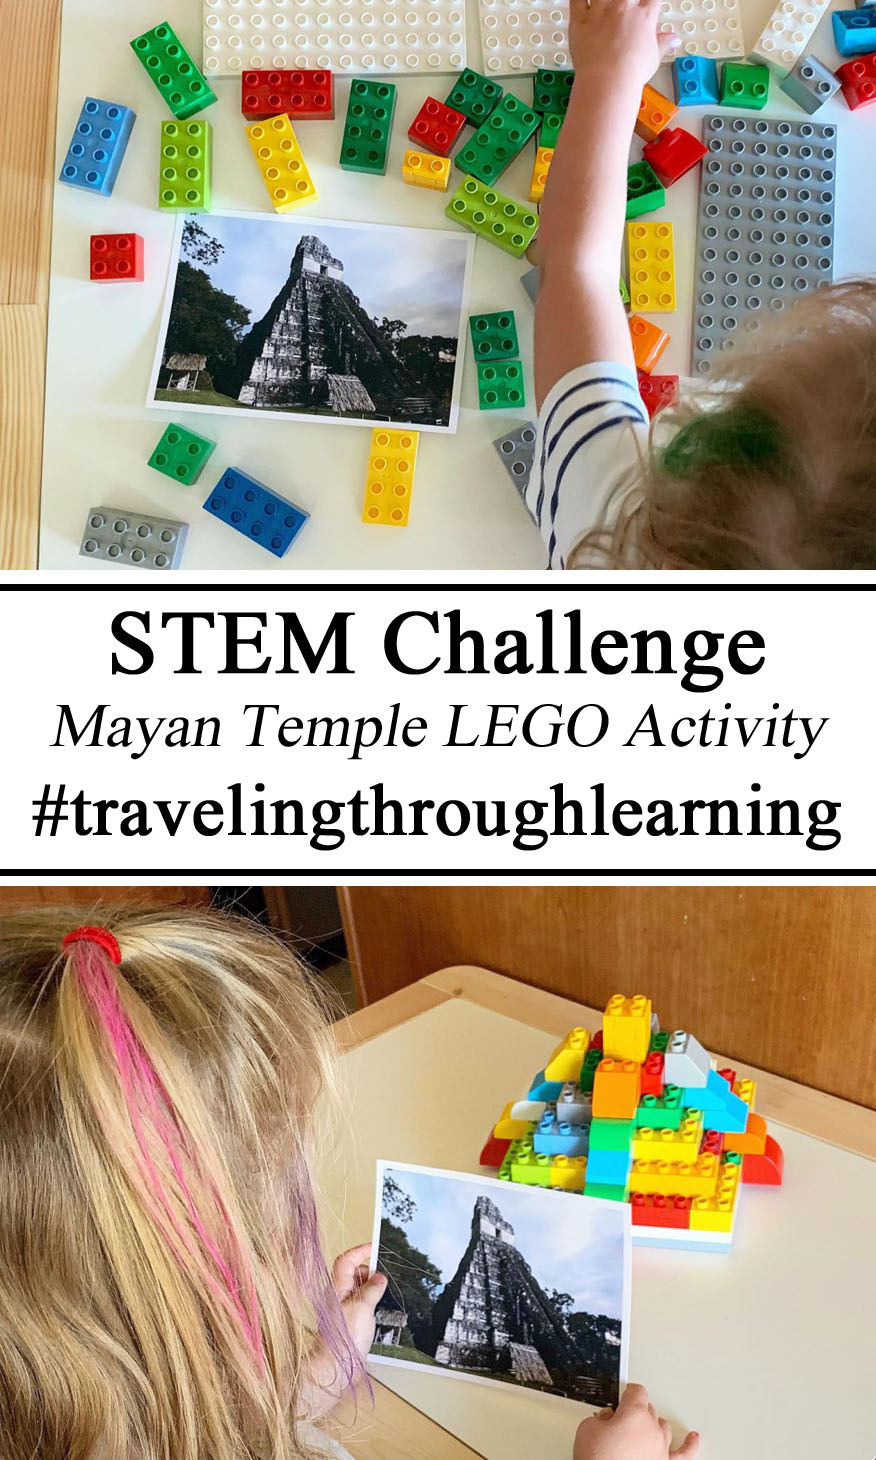 Maya Mayan Unit Study Studies Guatemala Guatemala Temple Ruins Lego Duplo Activity STEM Challenge Activity Learning Learn Get Creative With Homeschool Homeschooling, Ideas Inspiration Montessori